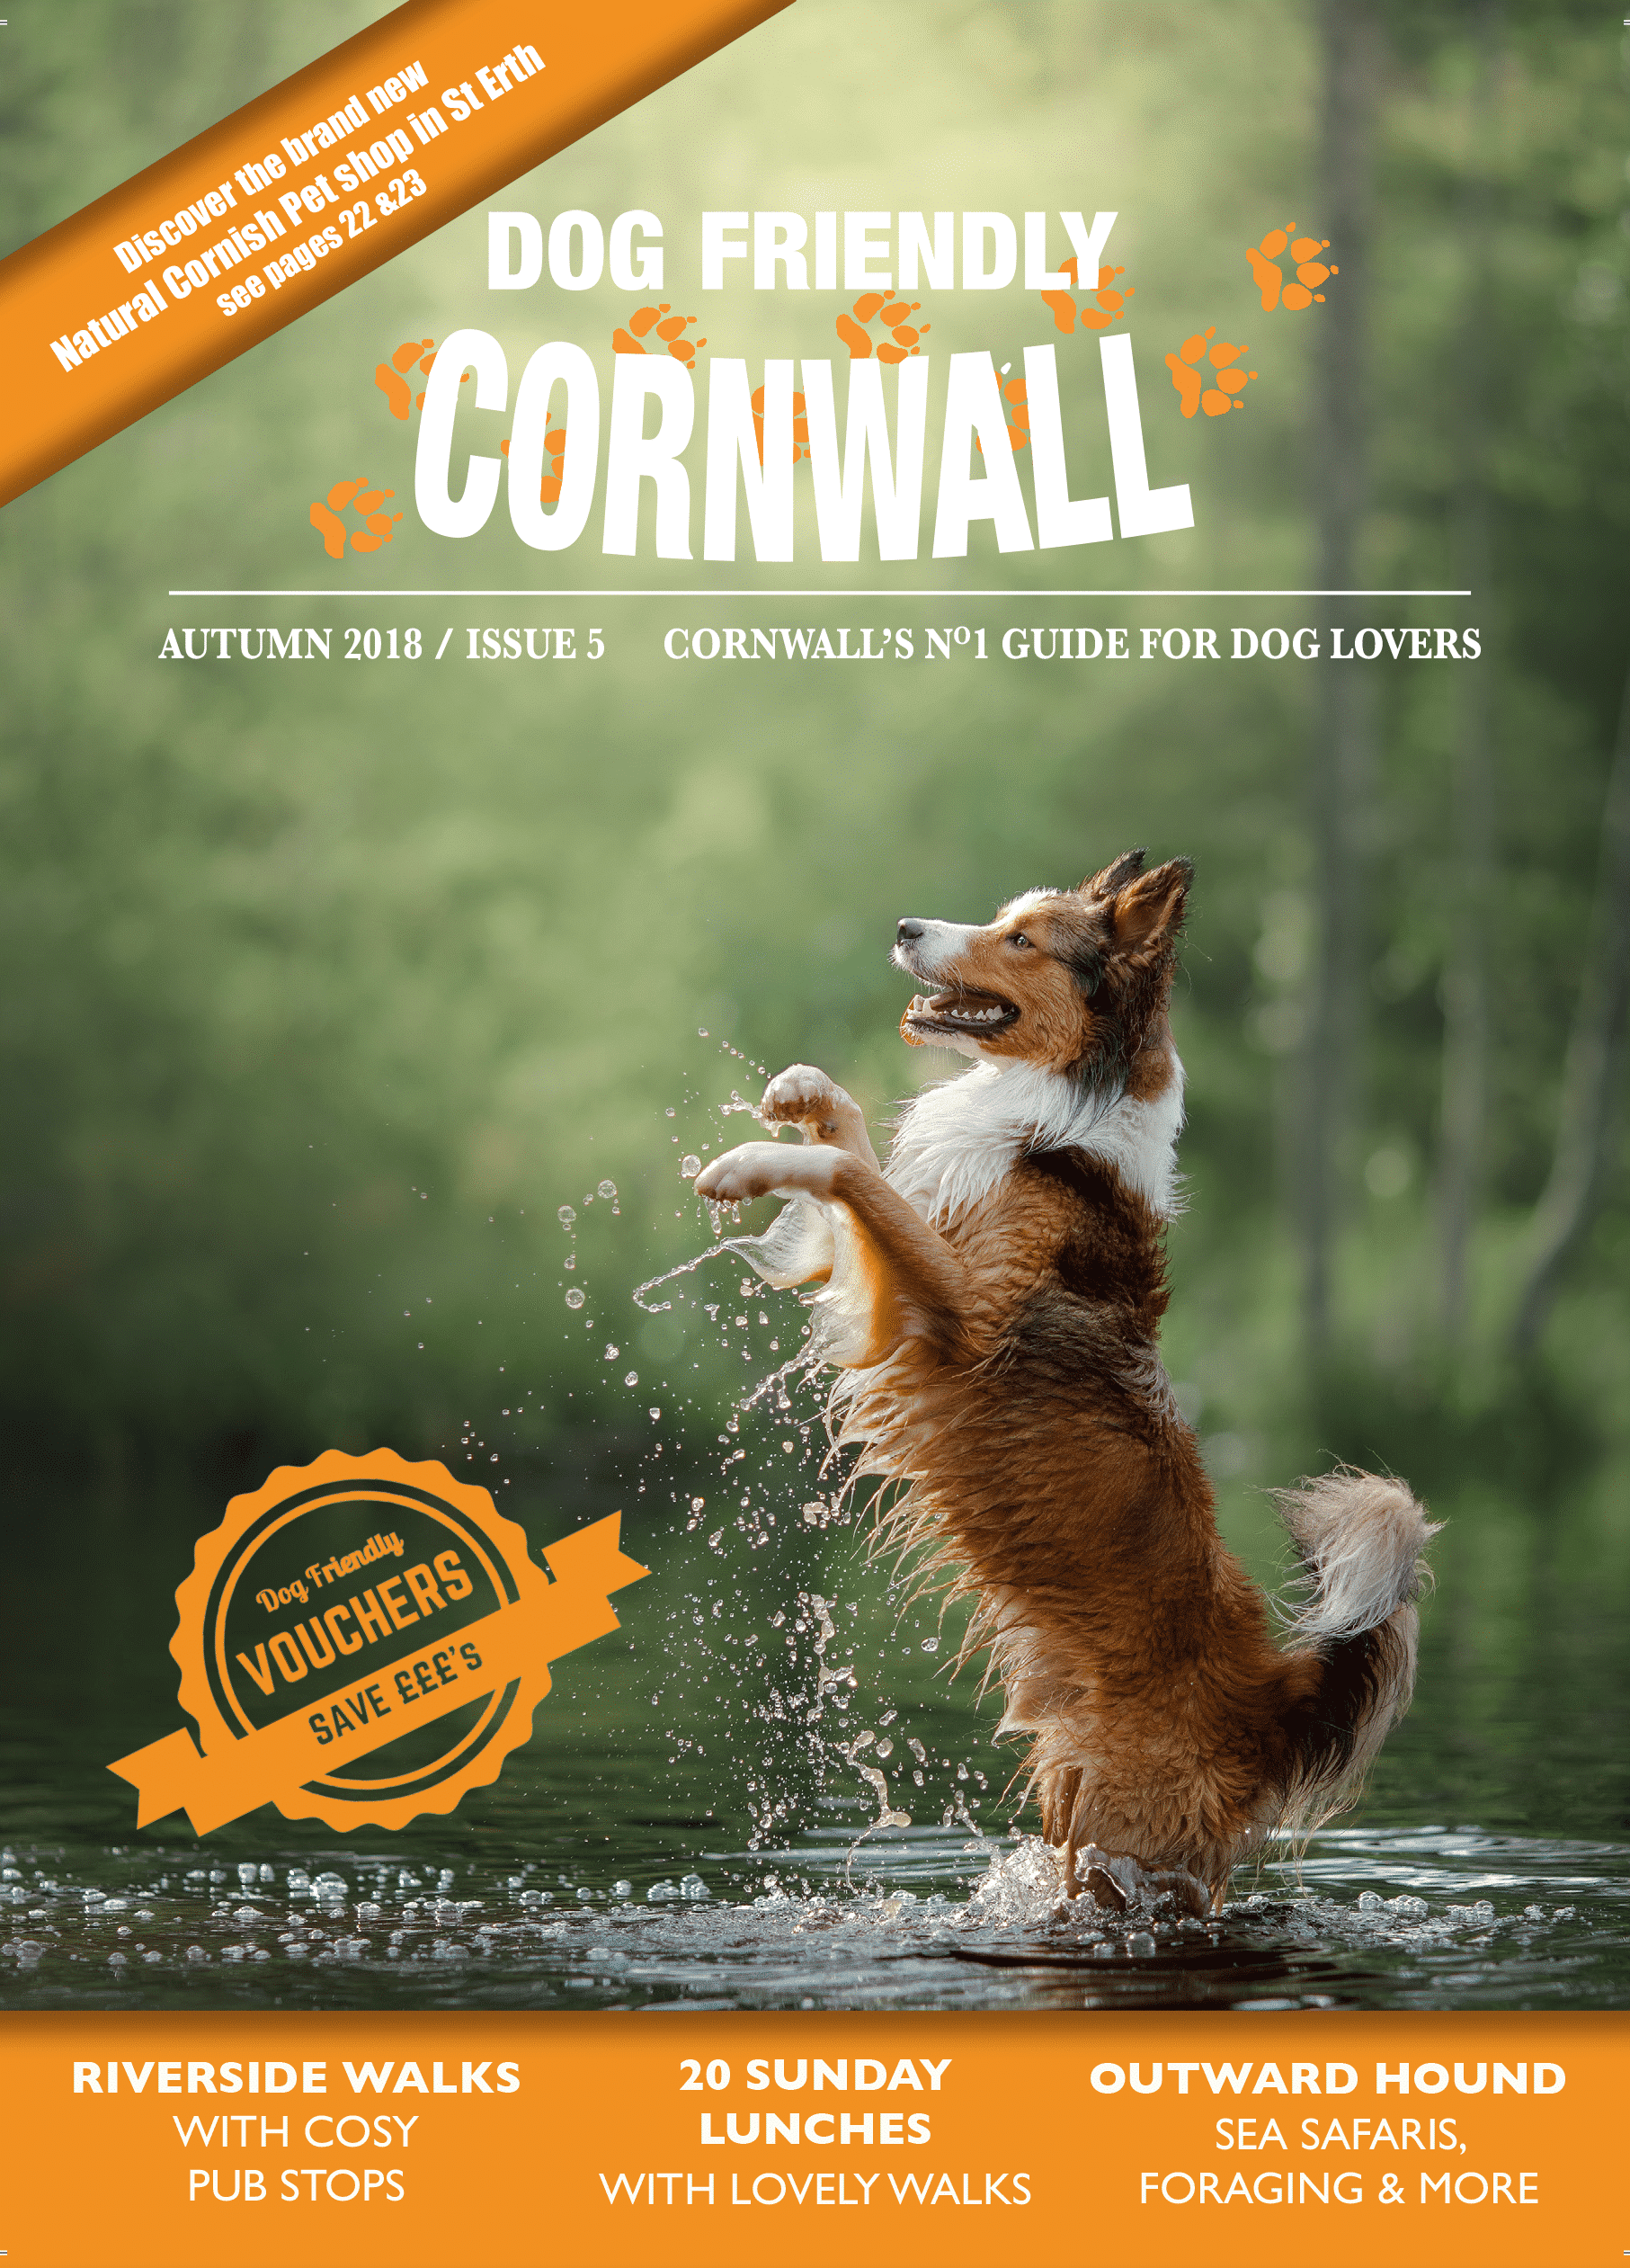 Dog Friendly Cornwall Autumn 2018 issue